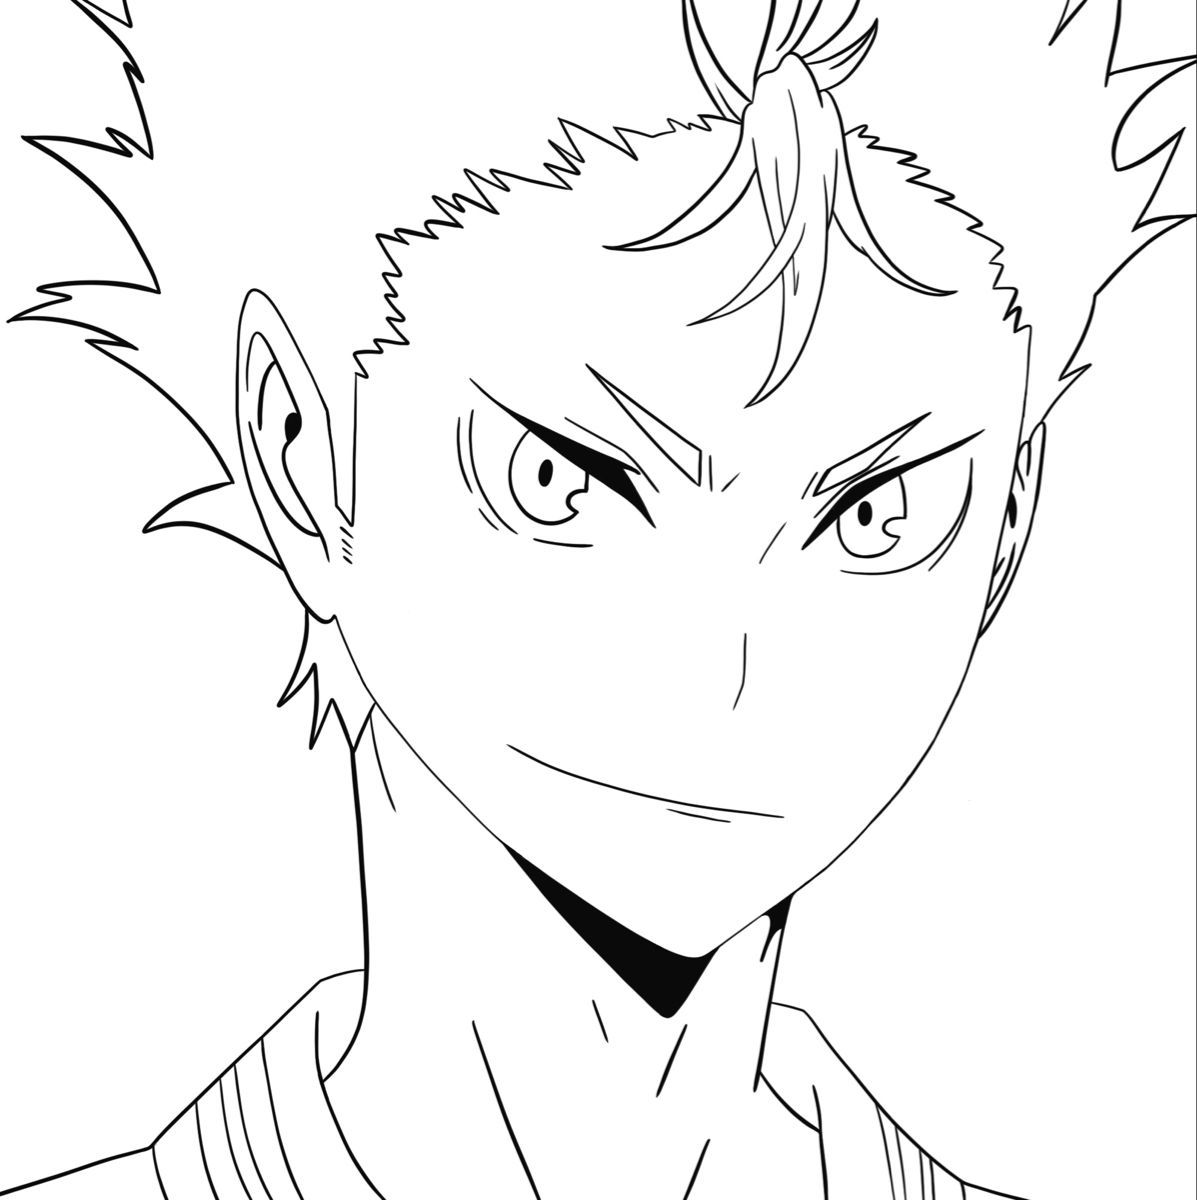 Pin By Rawan A M On تلوين In 2021 Anime Character Drawing Anime Drawings Sketches Anime Lineart [ 1200 x 1197 Pixel ]